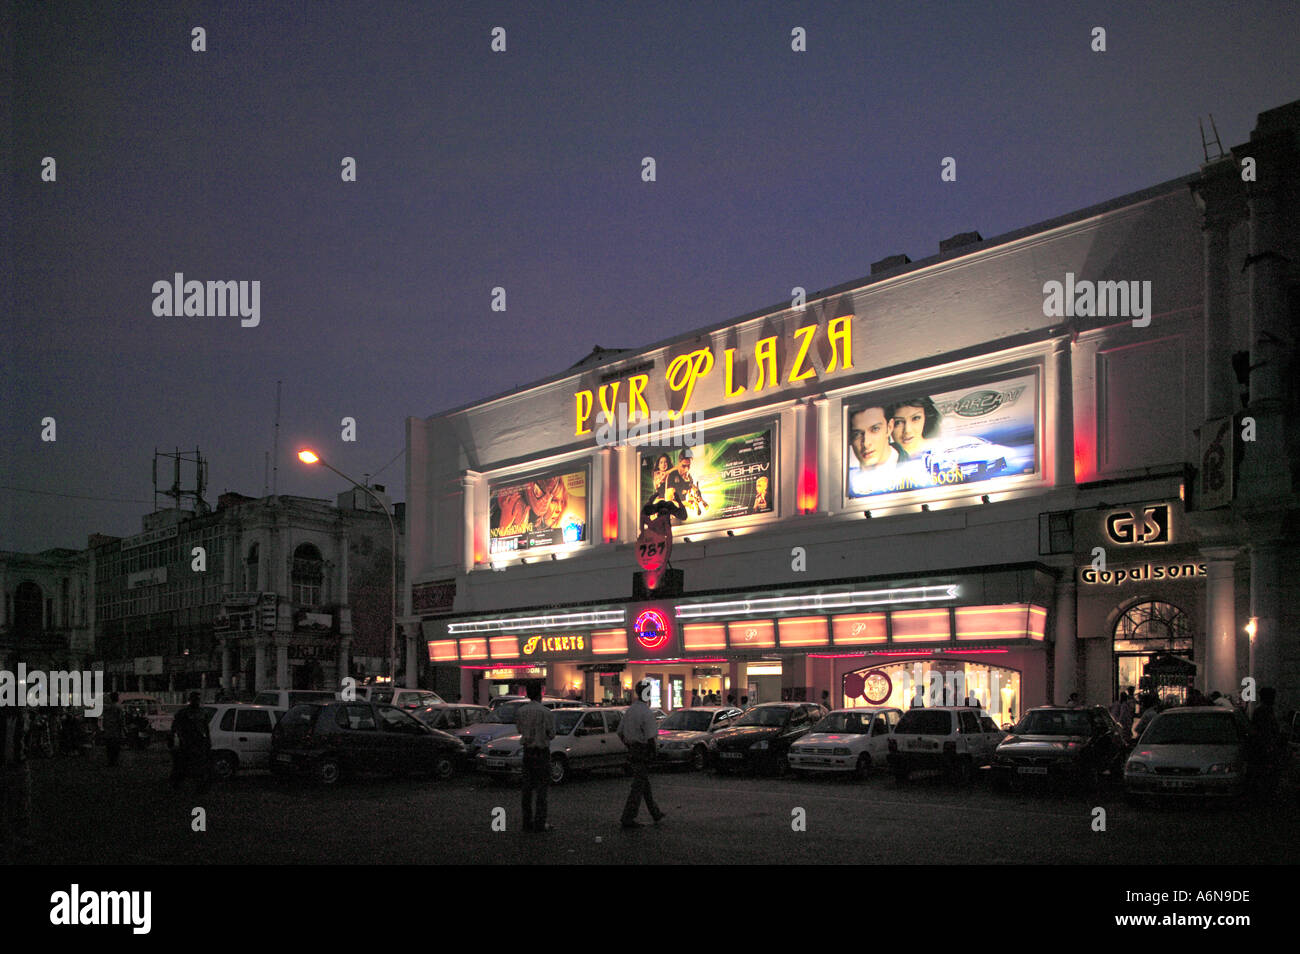 Plaza Cinema Connaught Place New Delhi India - Stock Image